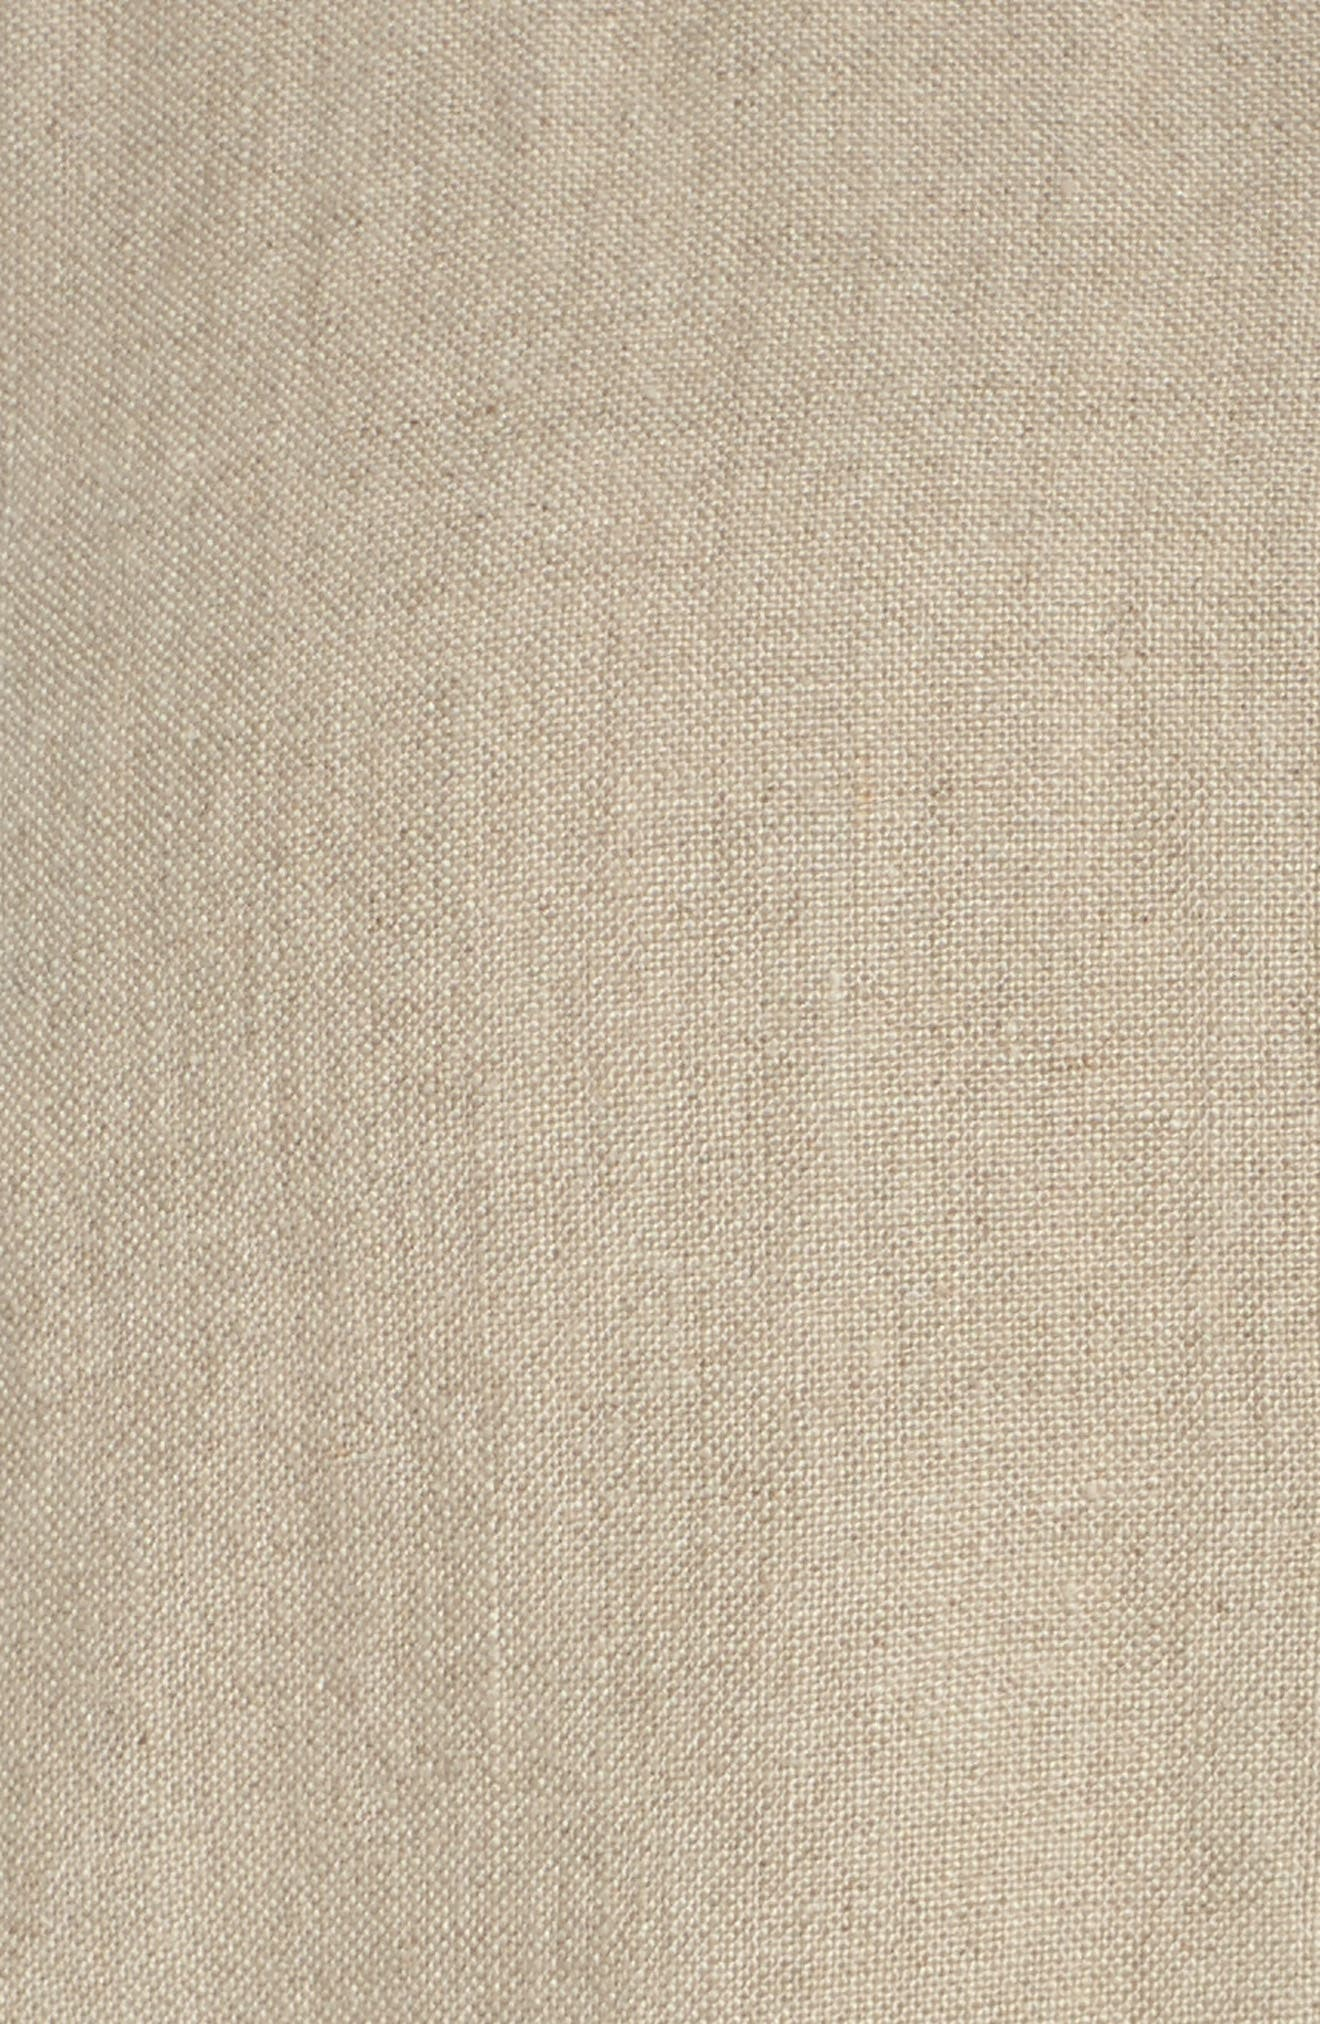 Organic Linen Jacket,                             Alternate thumbnail 6, color,                             Undyed Natural